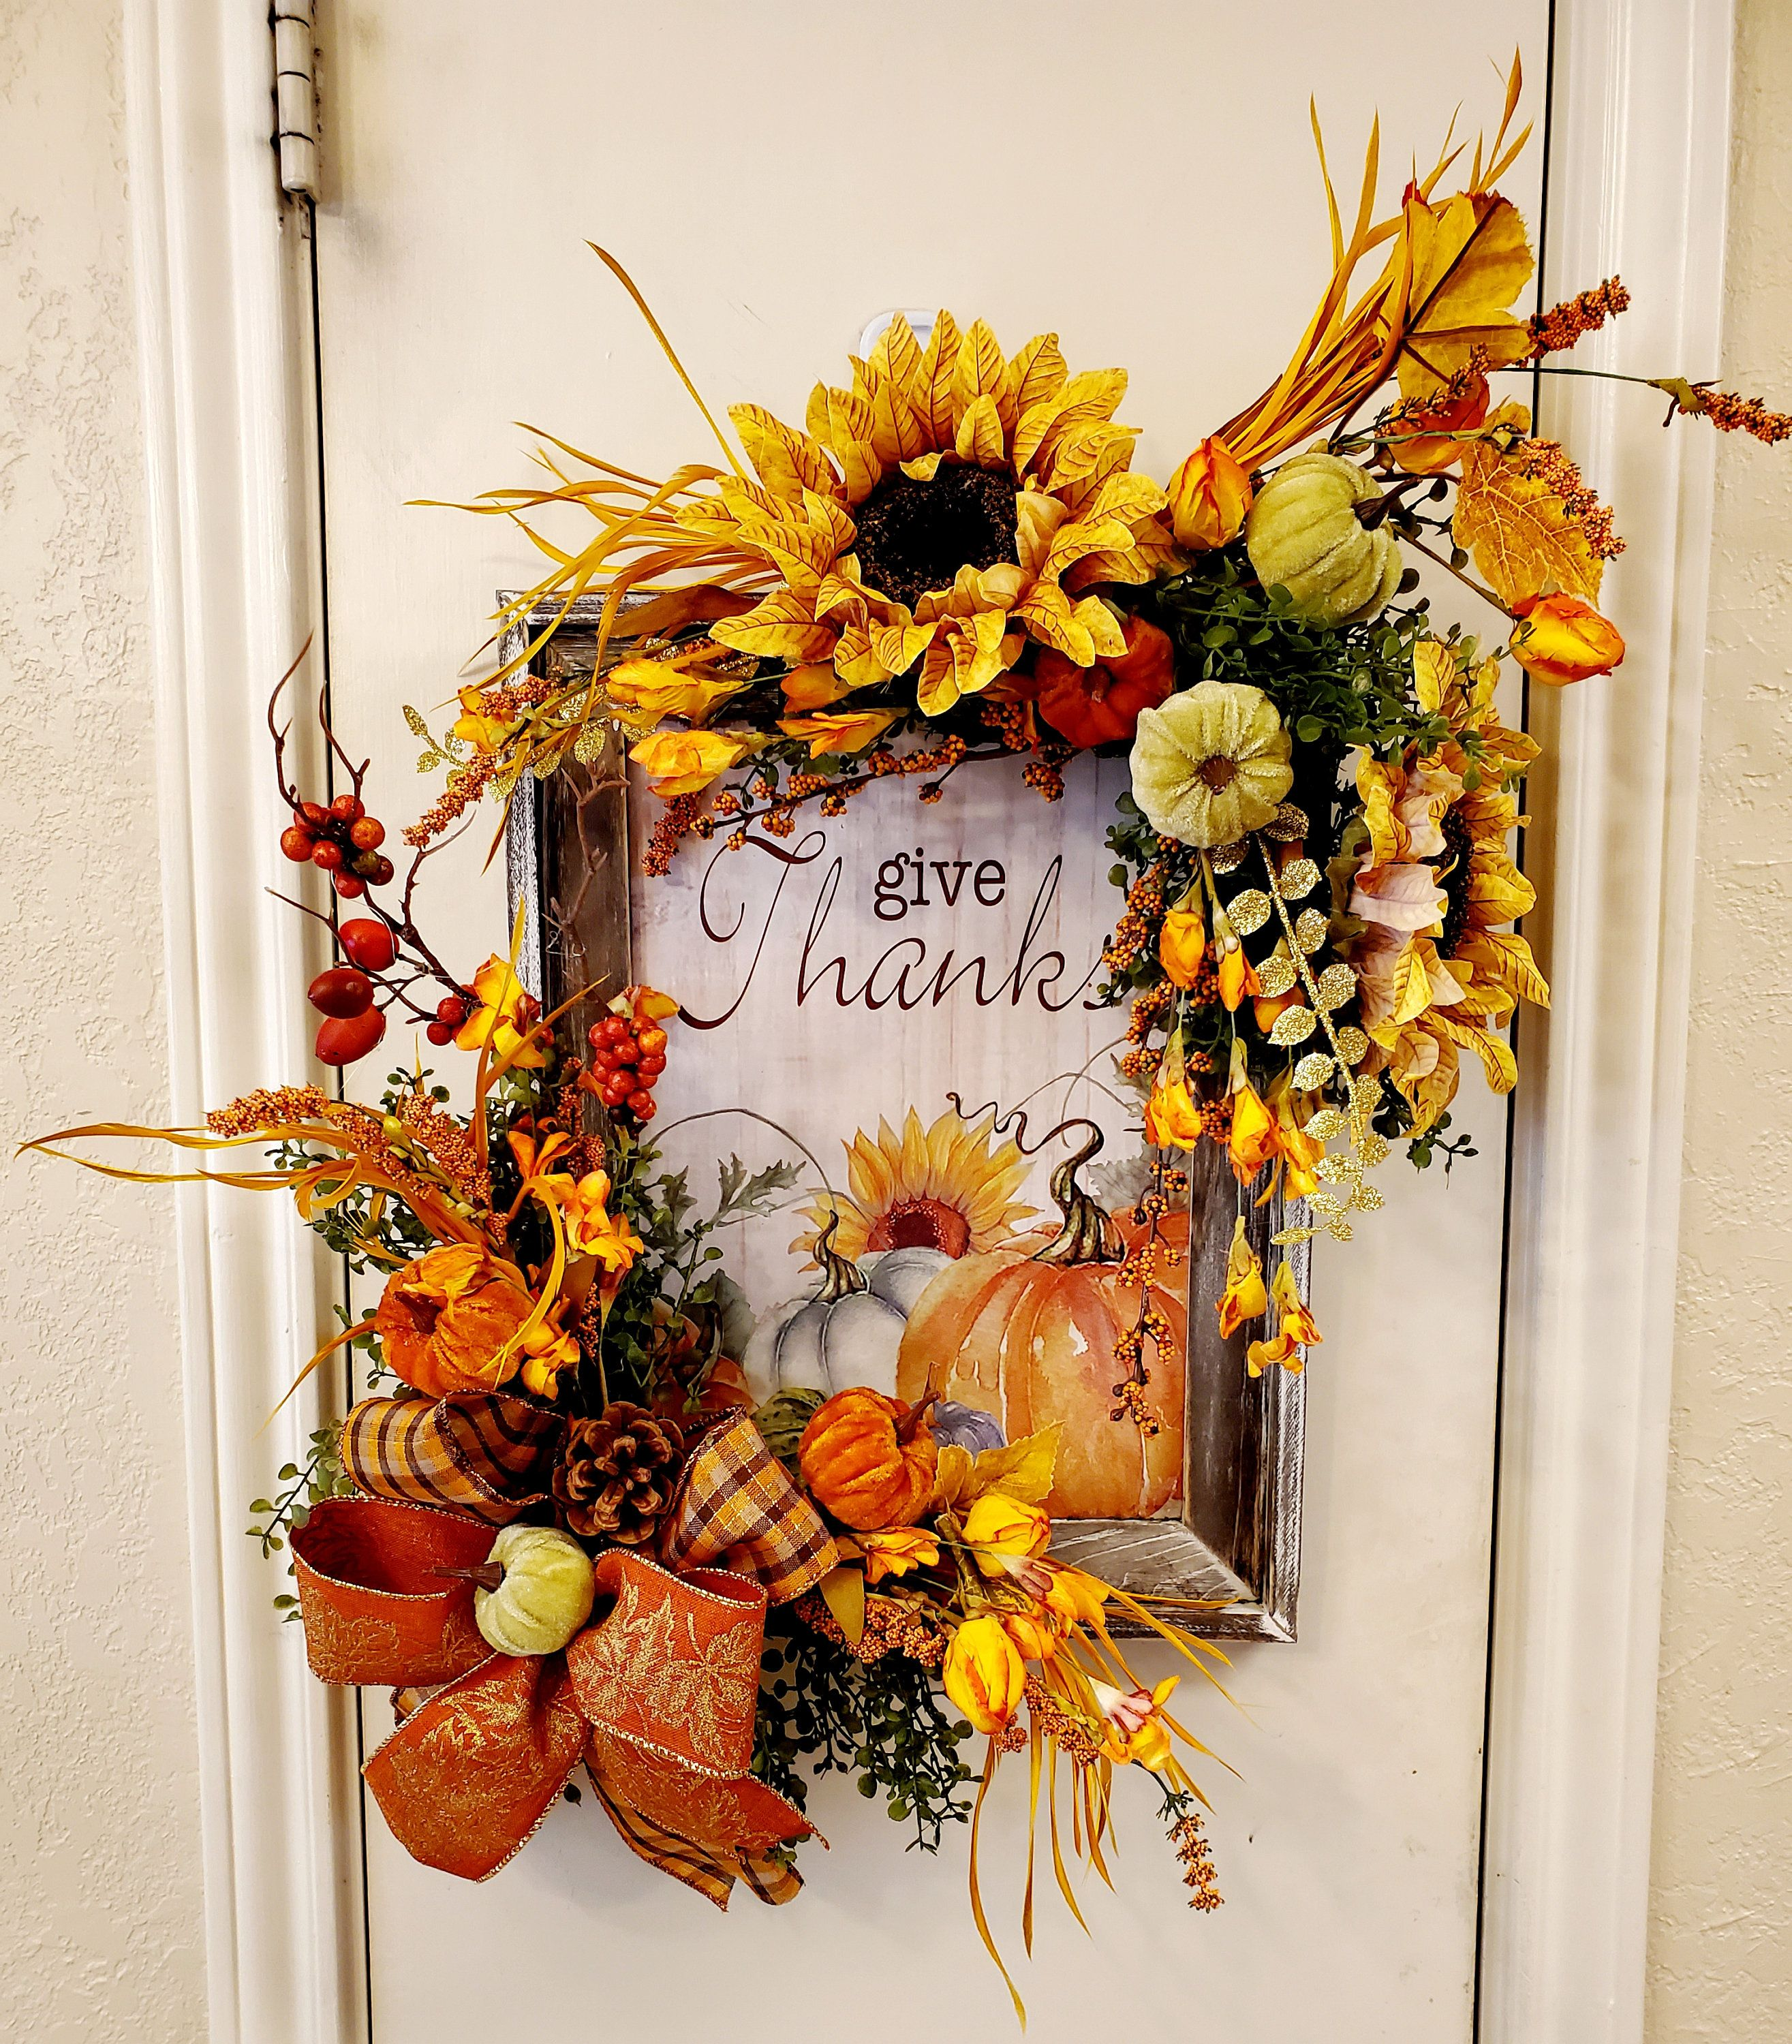 Give Thanks Frame Fall Wall Hanging Autumn Door Hanger Fall Decor Fall Wall Decor Give Thanks Wooden Sign Rustic Fall Door Door Hanger Fall Wall Decor Fall Decor Fall Door